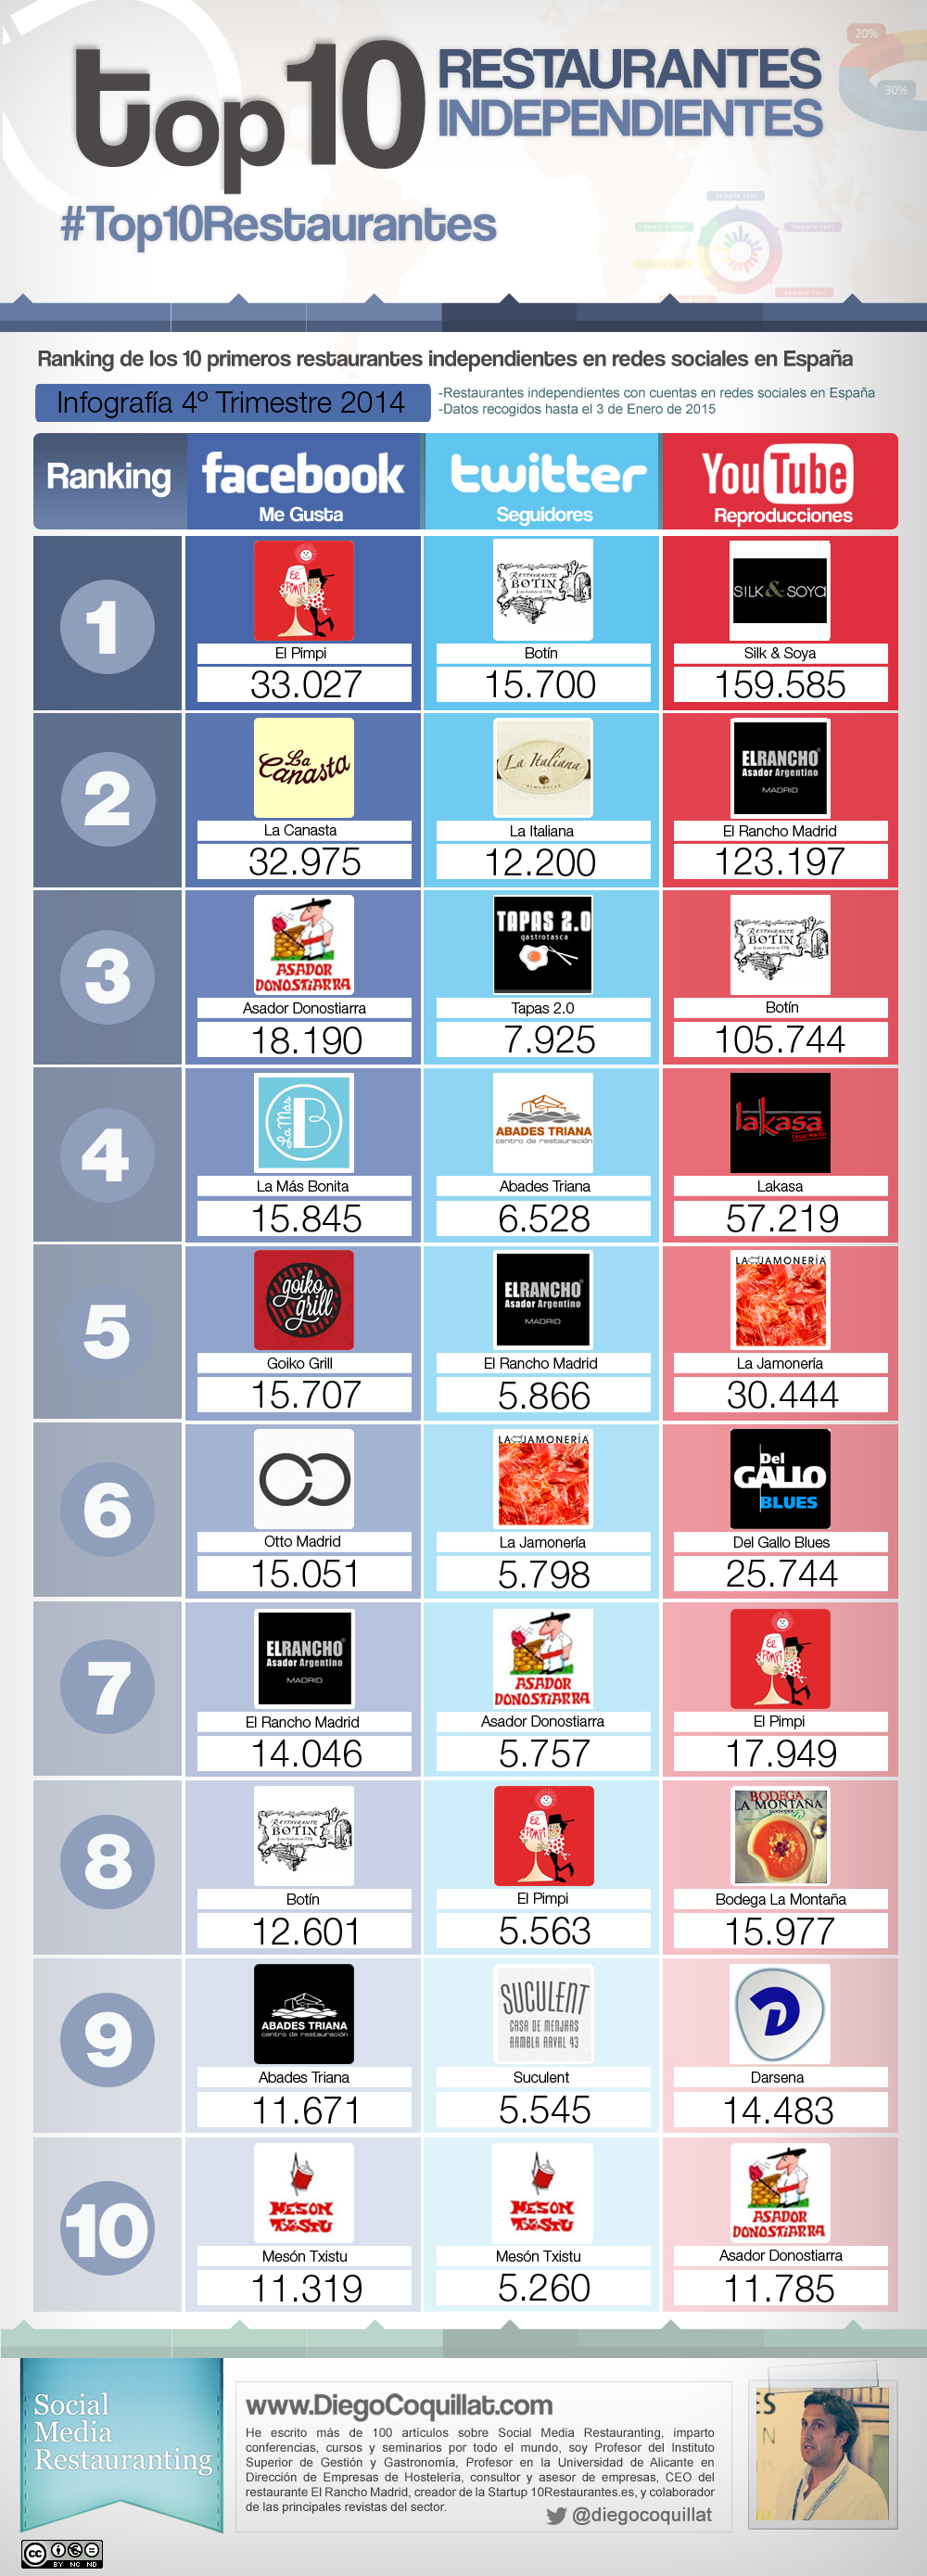 Best restaurants in social networks 2014